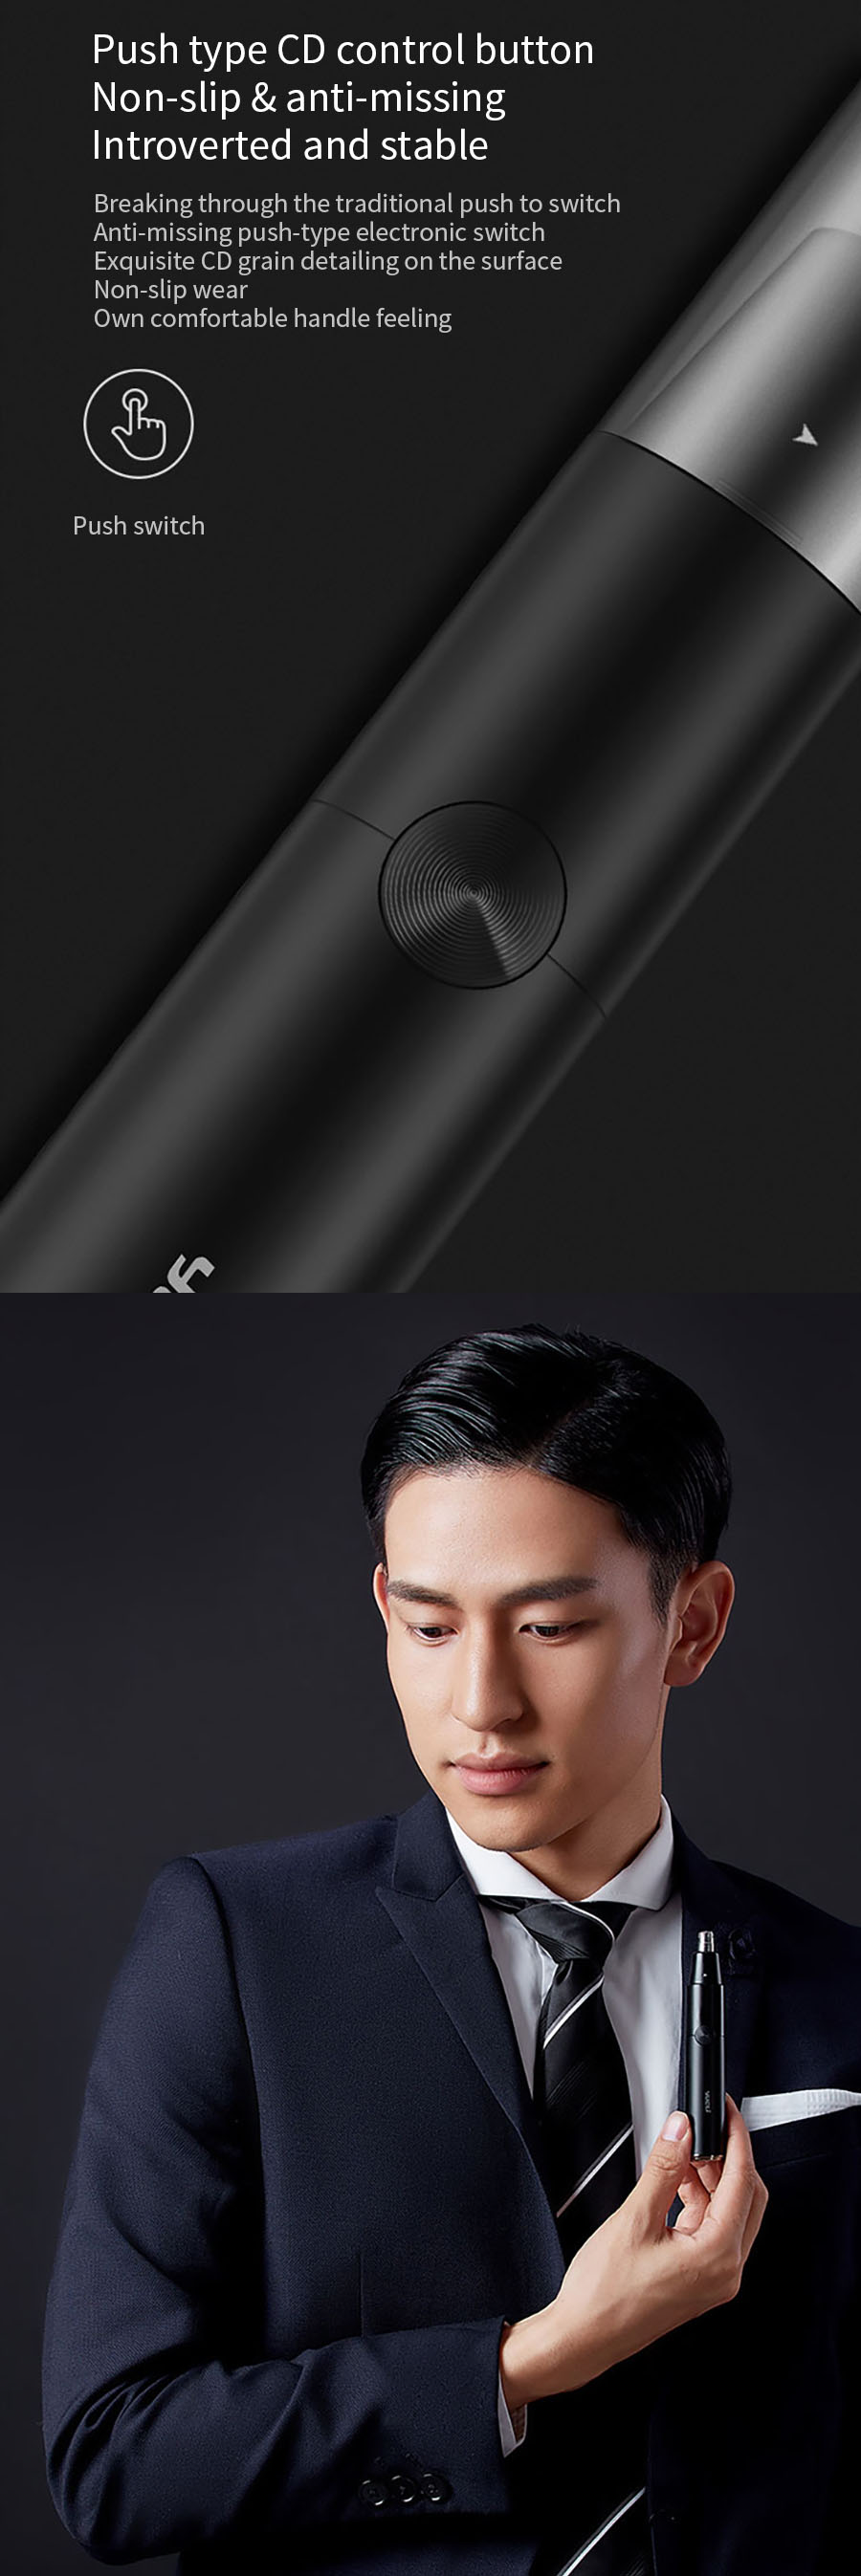 YUELI HR-310BK H31 Electric Nose Hair Trimmer 360 Degree Rotate Ear Nose Hair Razor Clipper Safe Cleaner Tool for Men and Women from Xiaomi Youpin